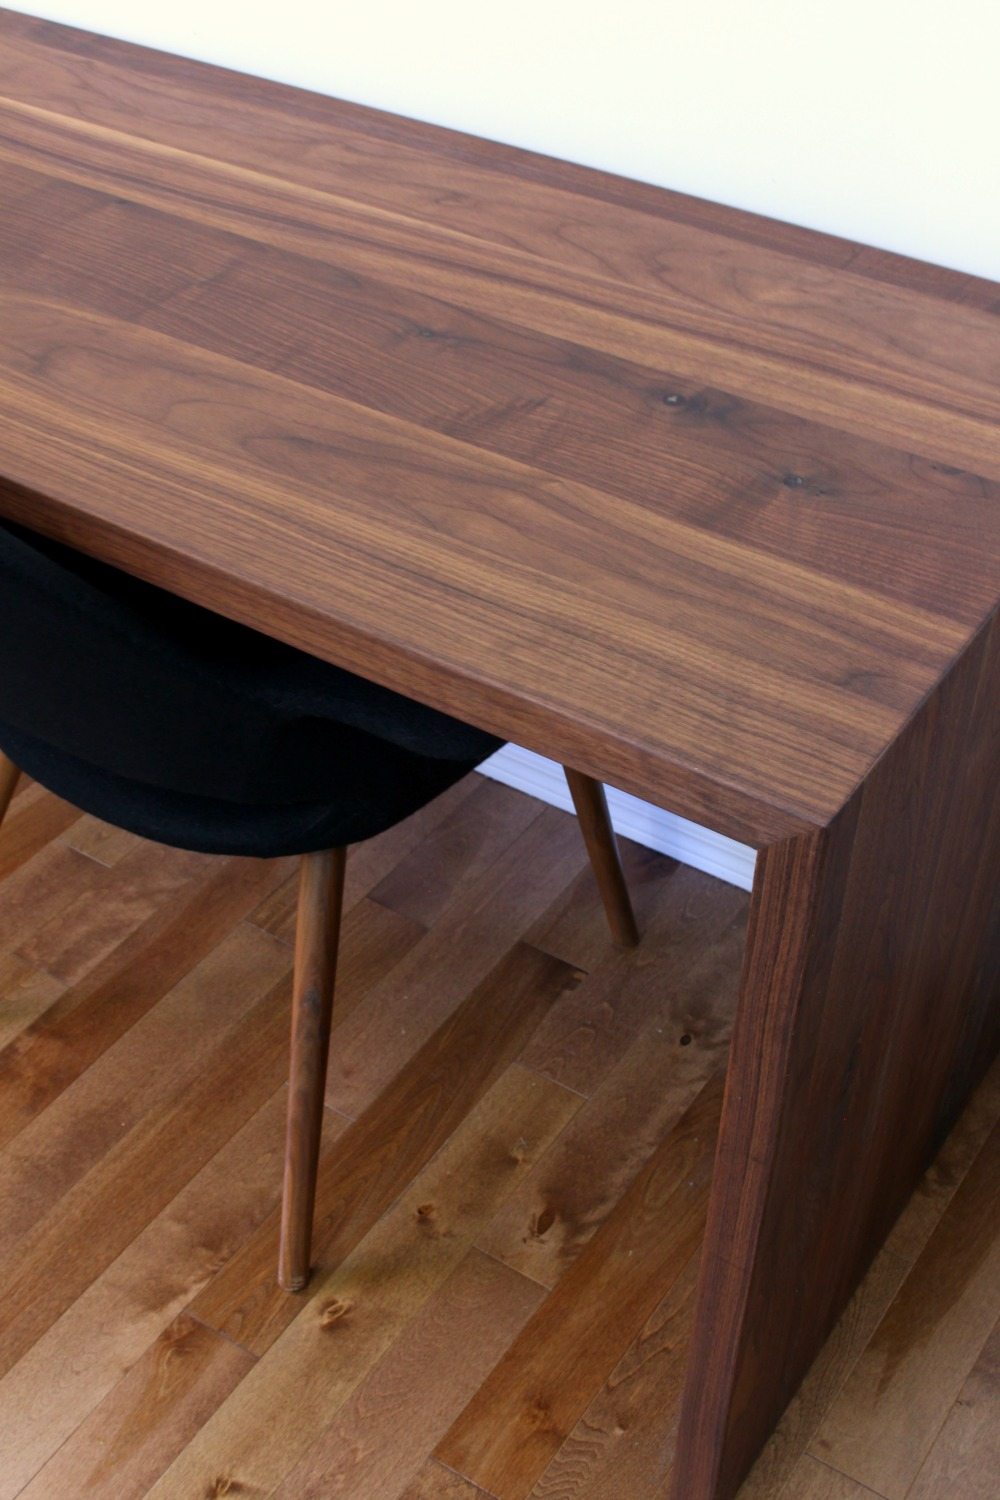 DIY Solid Walnut Waterfall Desk for Two | Dans le Lakehouse